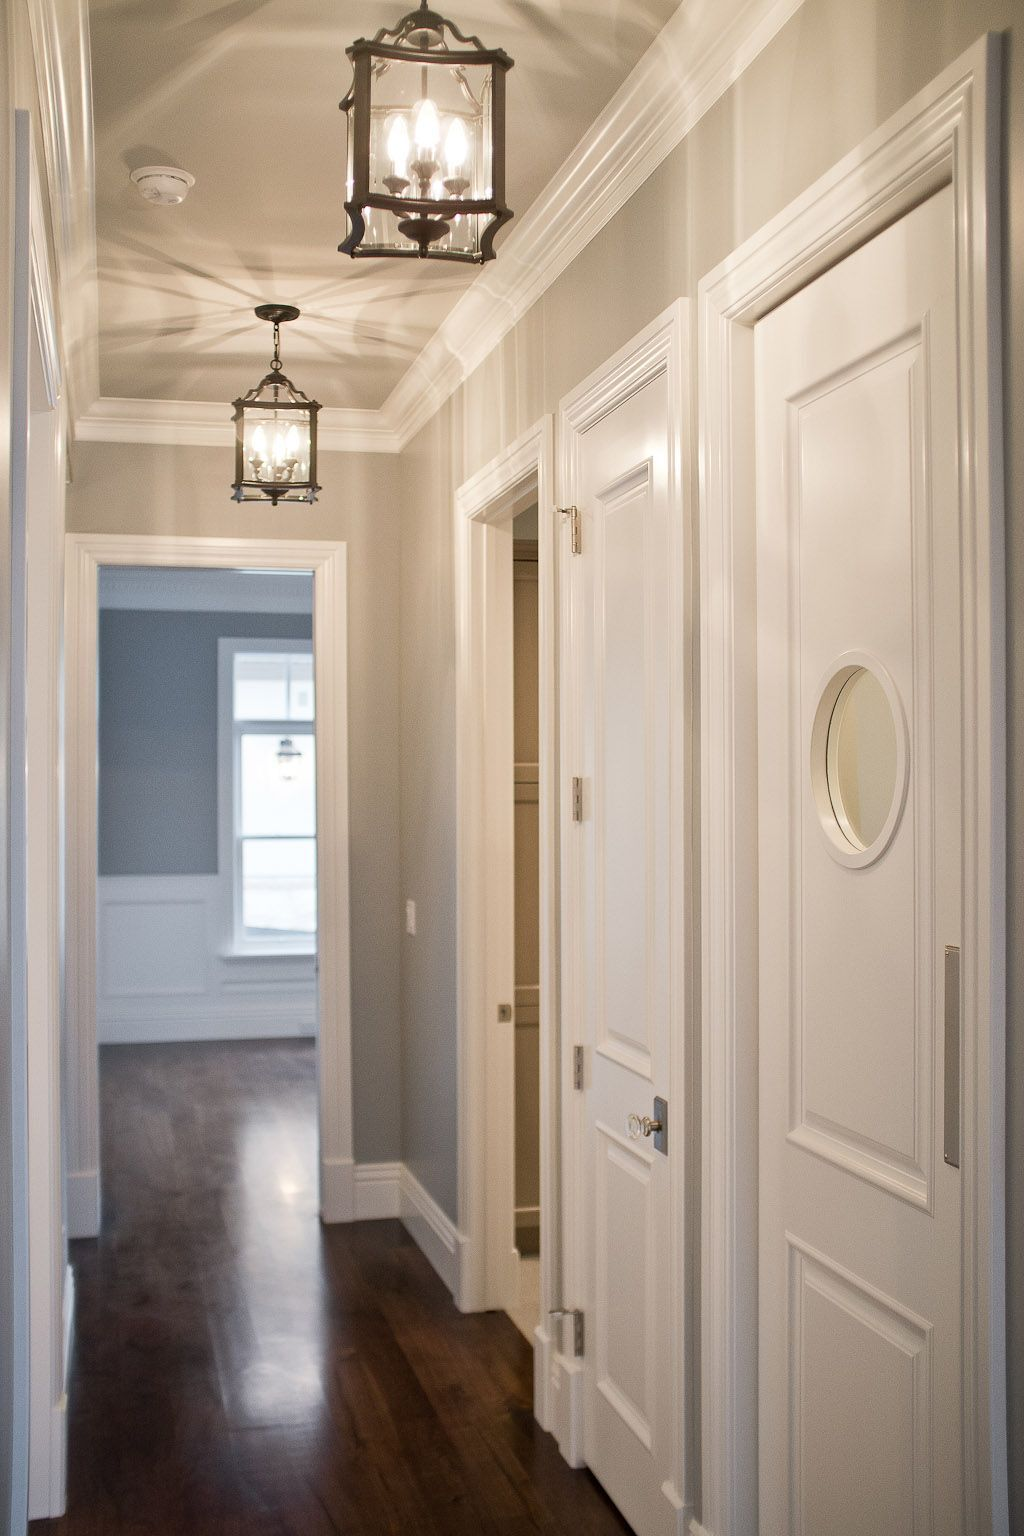 Fresh Up Your Hallway With Our Lighting Tips Check Here Some Ideas Www Lightingstores Eu V Hallway Lighting Hallway Ceiling Lights Hallway Light Fixtures Hallway ceiling light fixtures